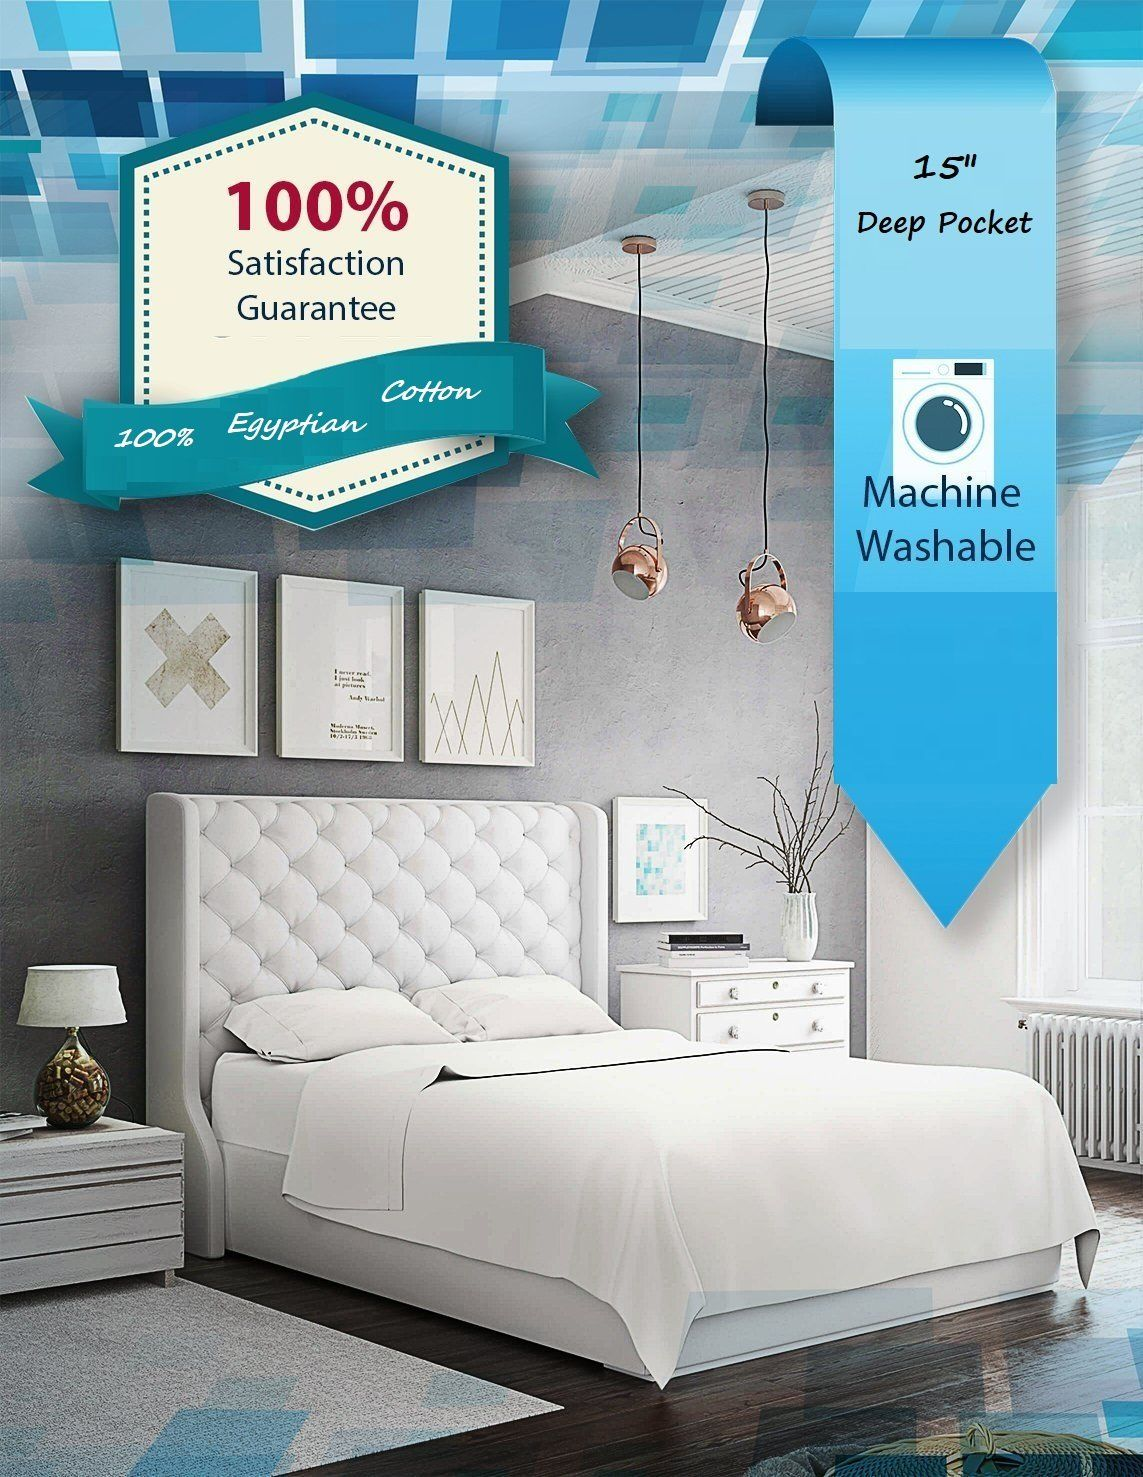 VGI Linen Authentic Heavy Quality Hotel Collection